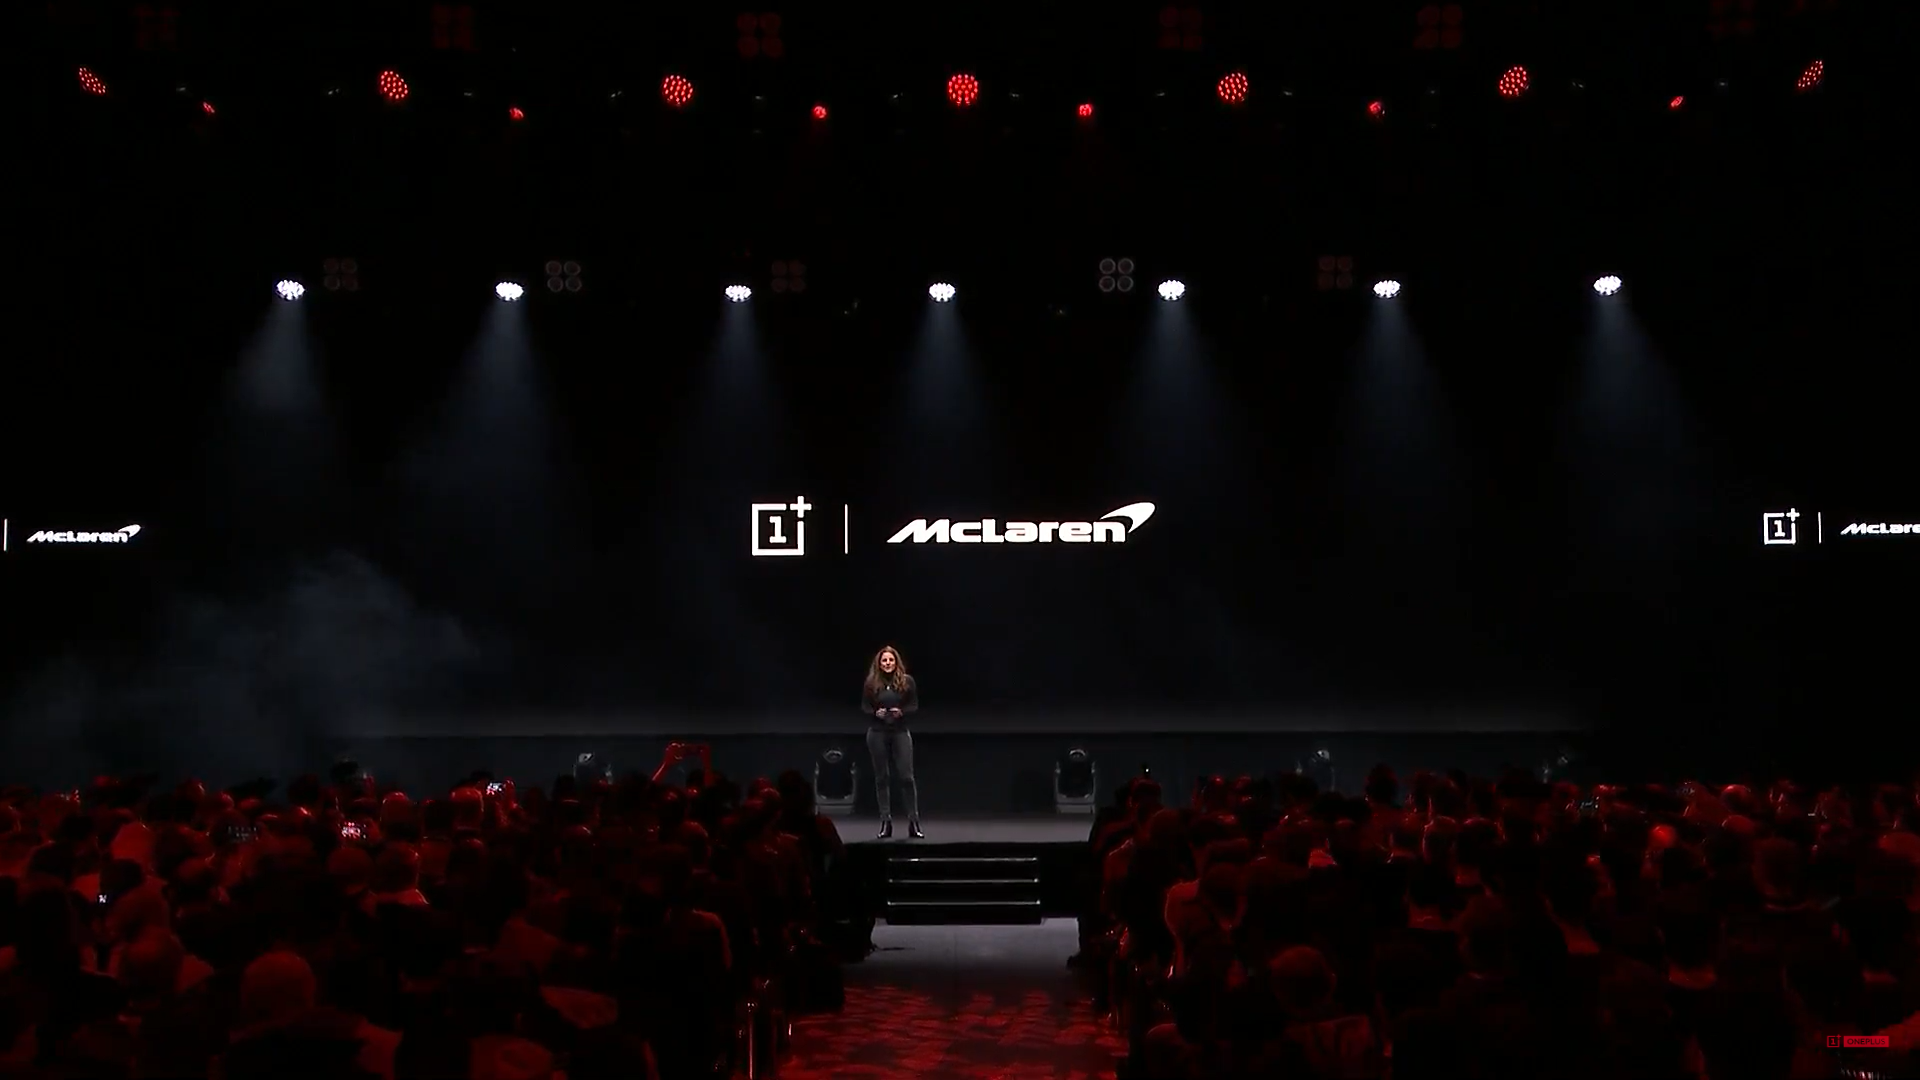 OnePlus unveils OnePlus 7T Pro and 7T Pro McLaren Edition at their event in London 1